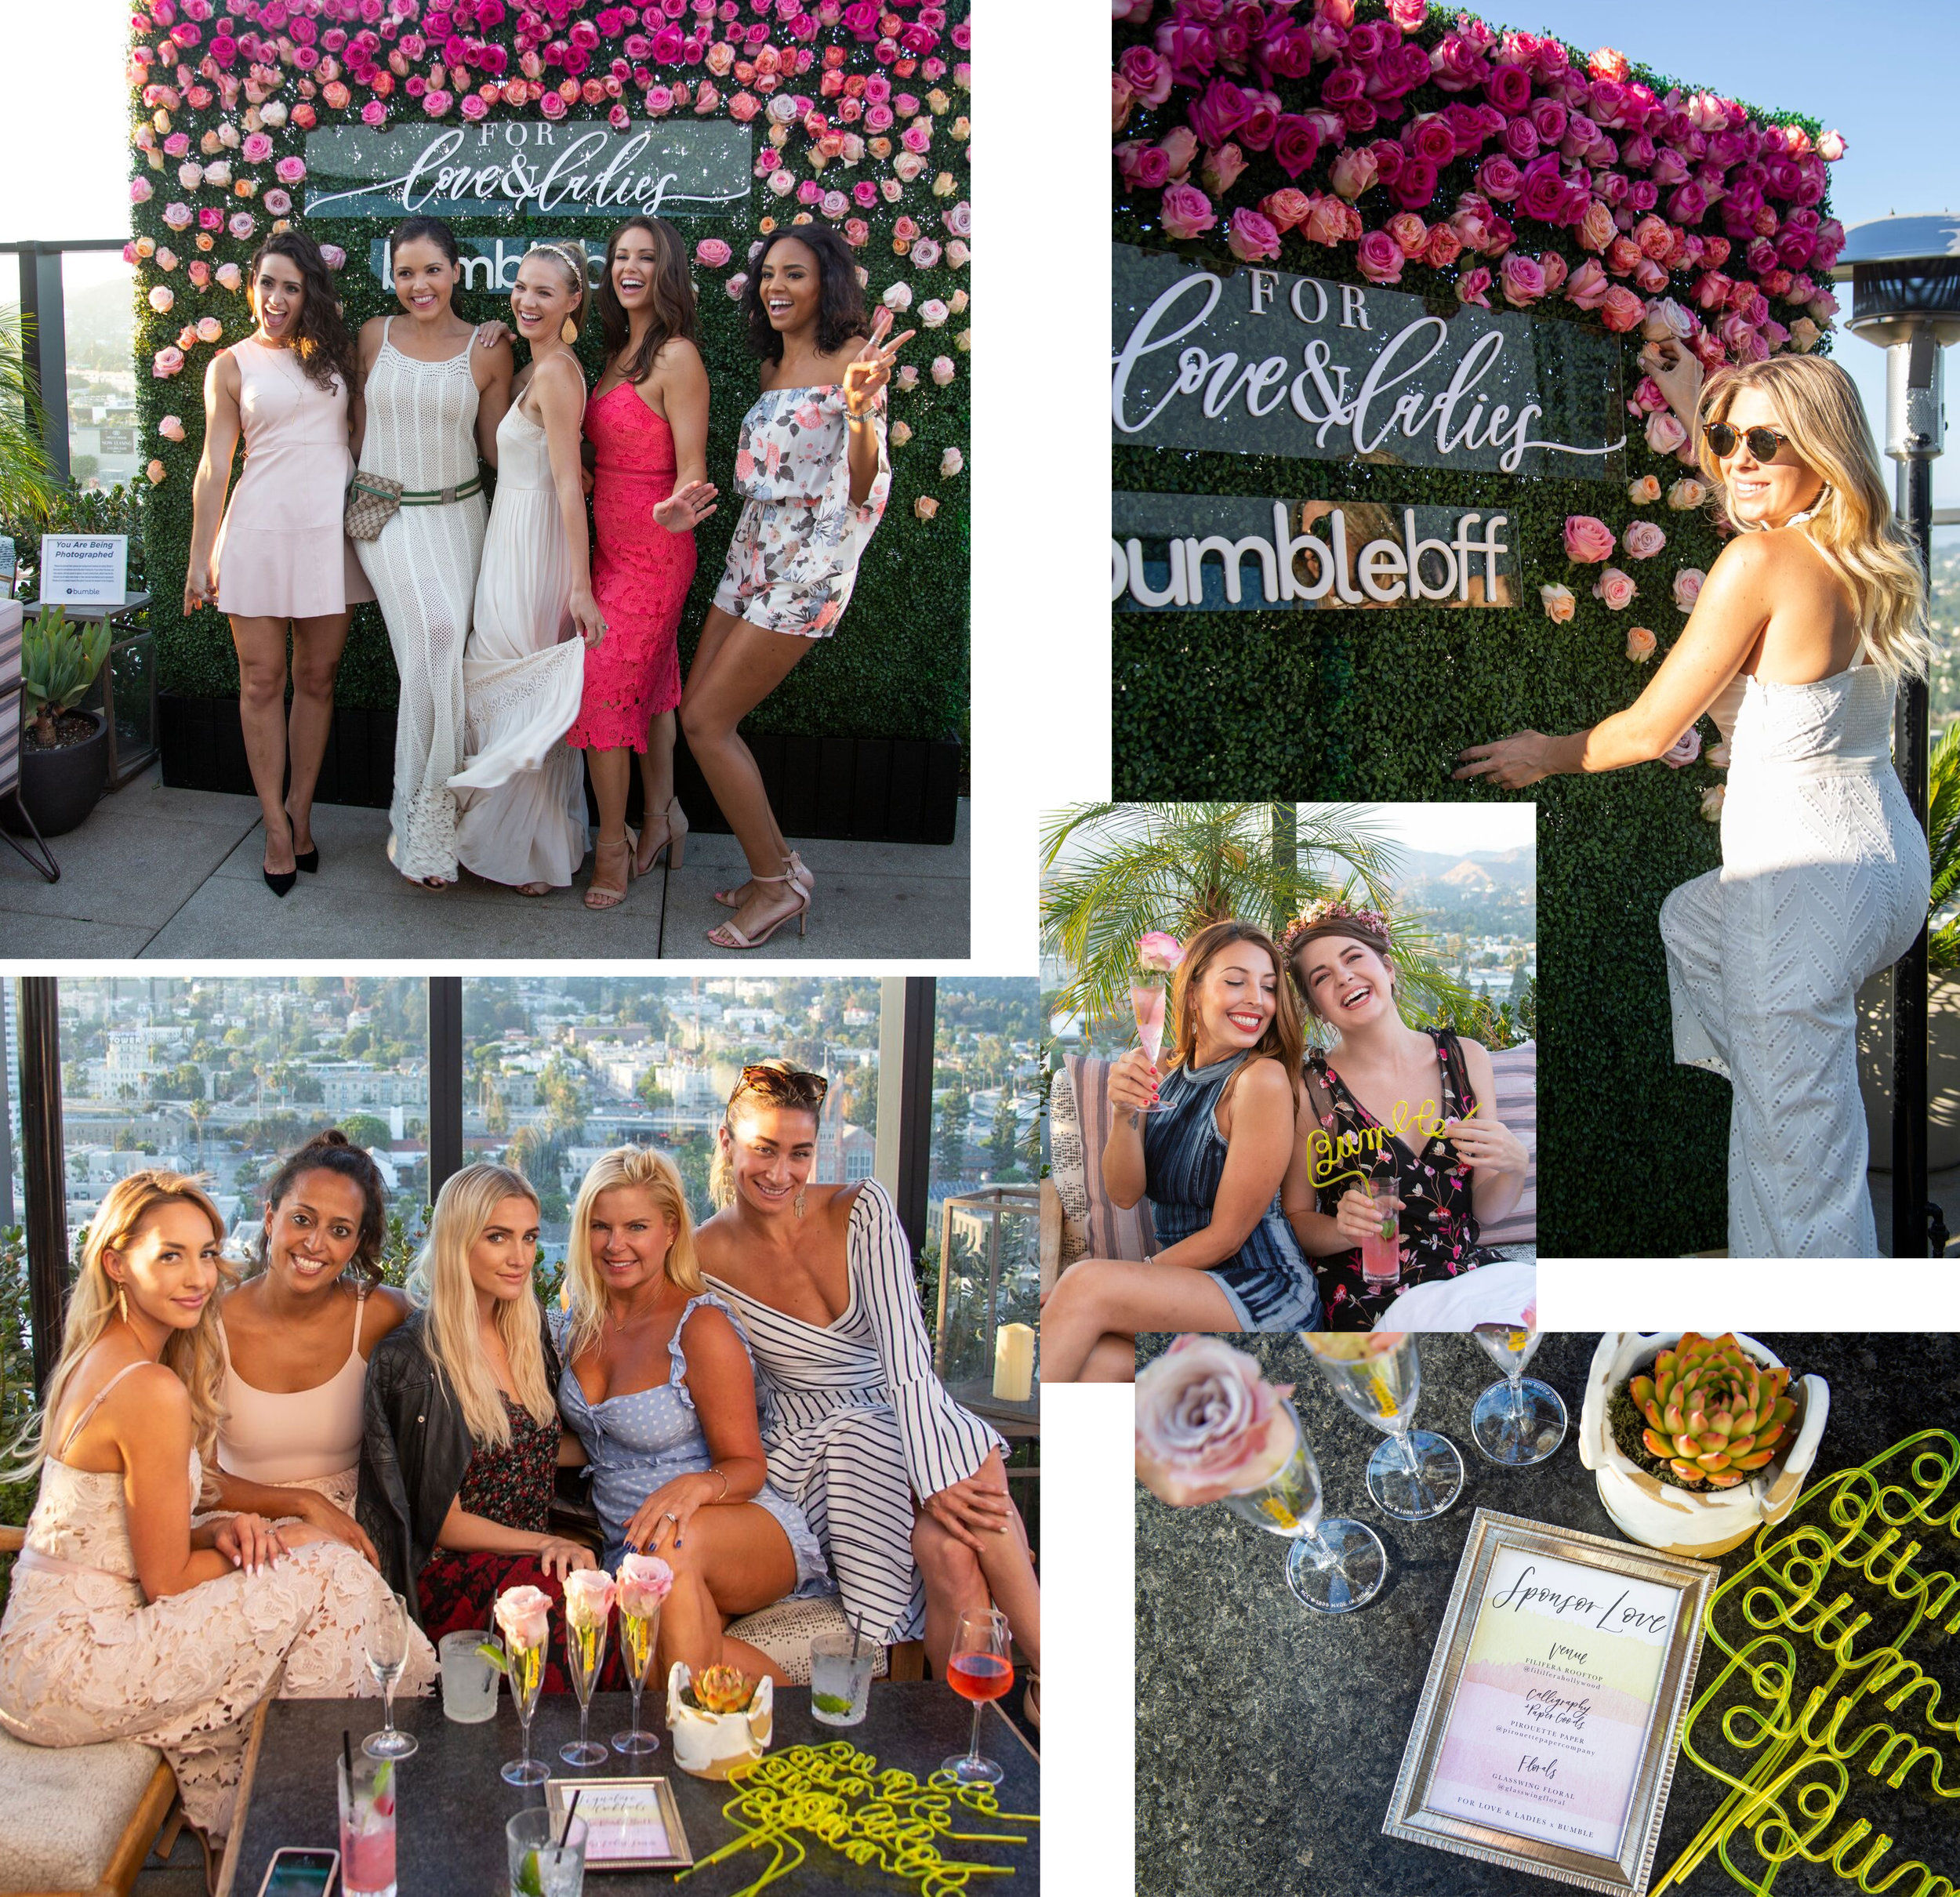 Sunset Soiree - For Love & Ladies + Bumble Bff